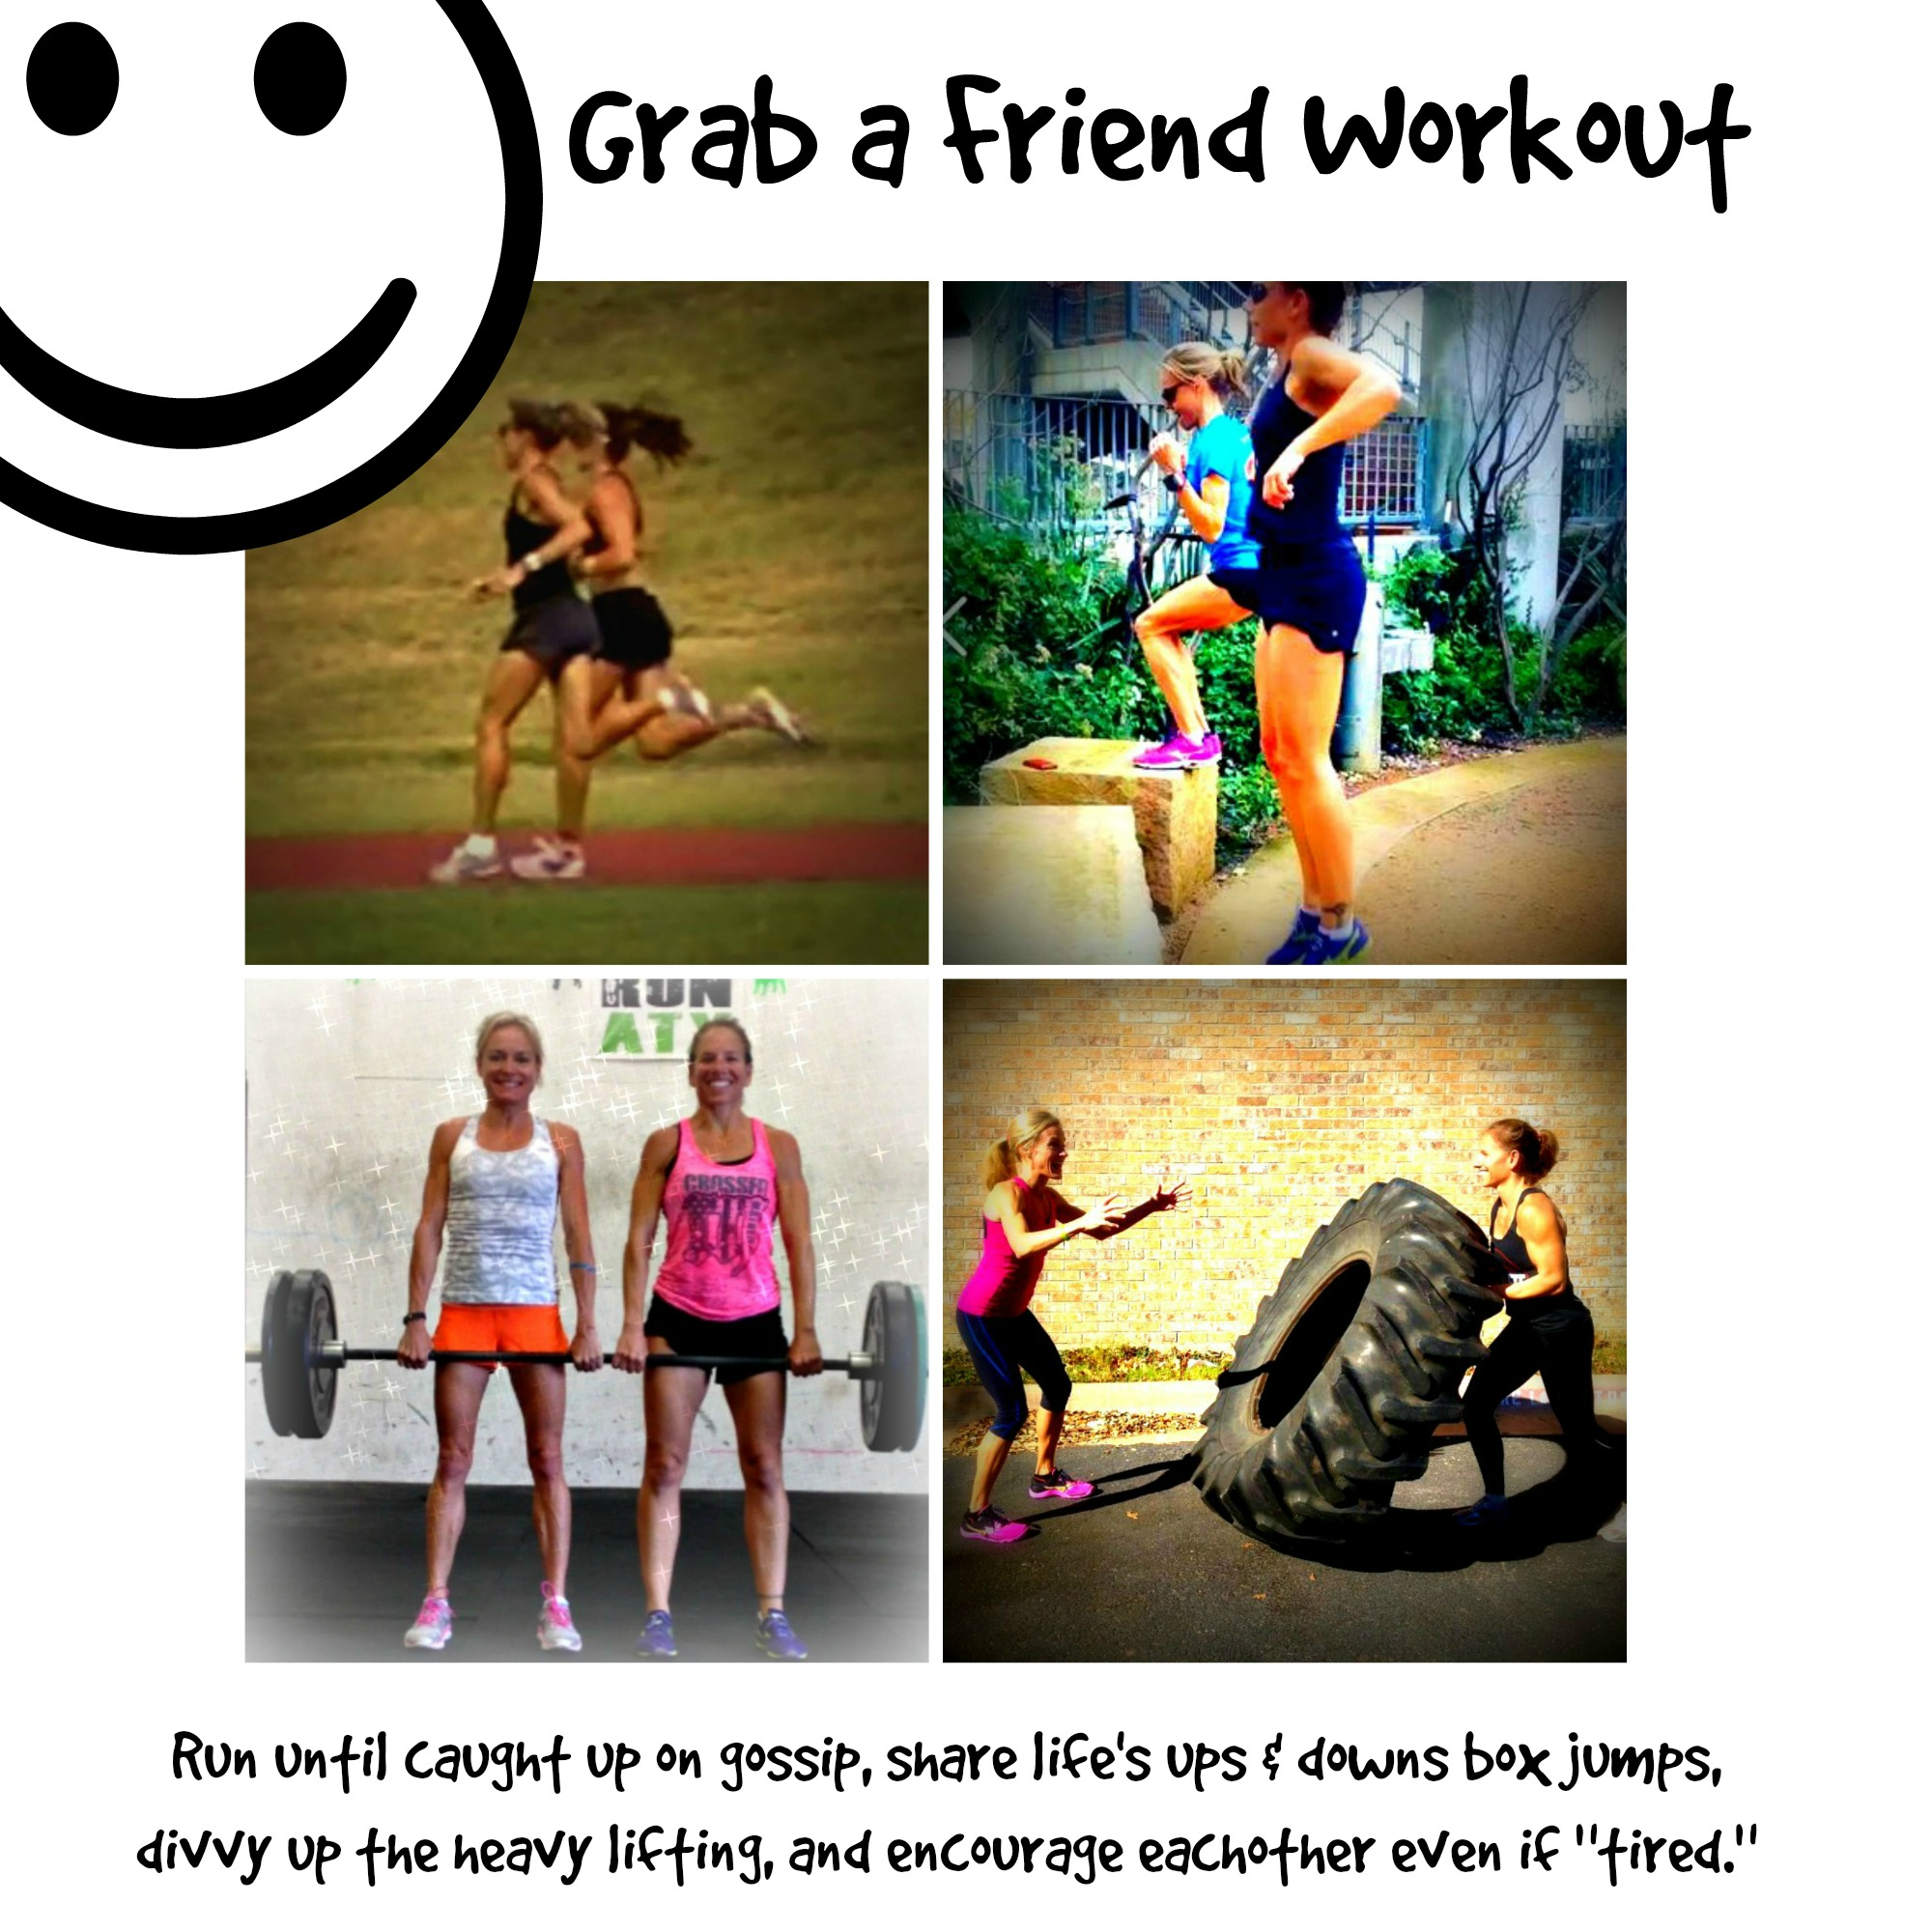 Partner Workout with friend